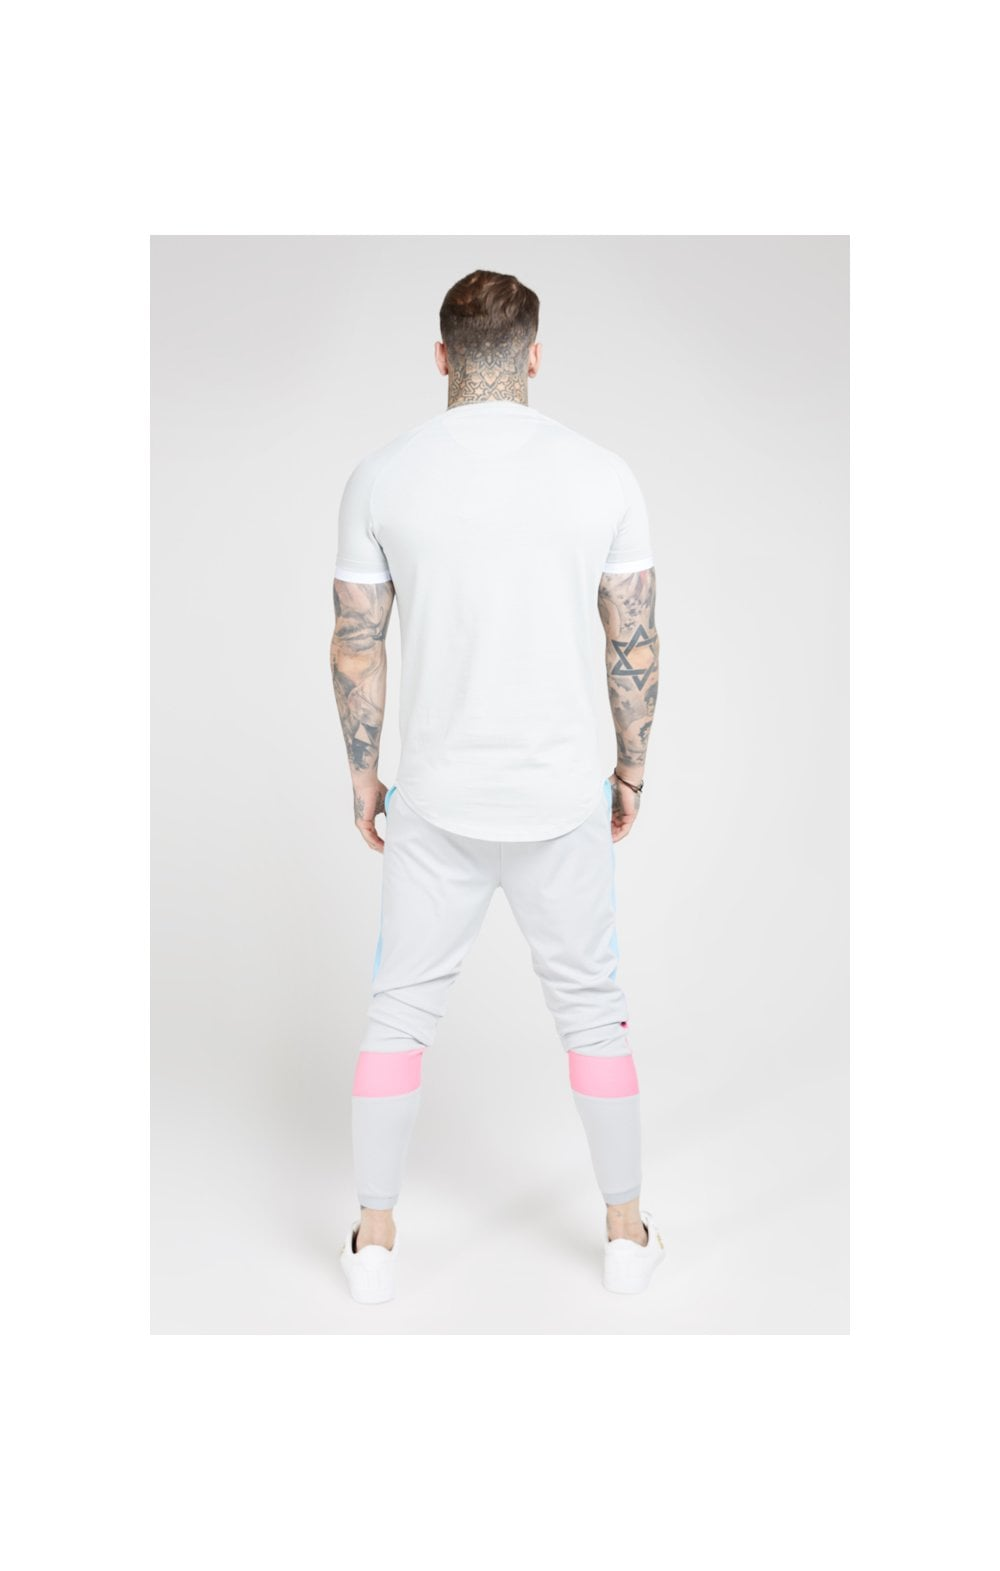 Load image into Gallery viewer, SikSilk S/S Inset Fade Tech Tee – Ice Grey & Tri Fade (5)